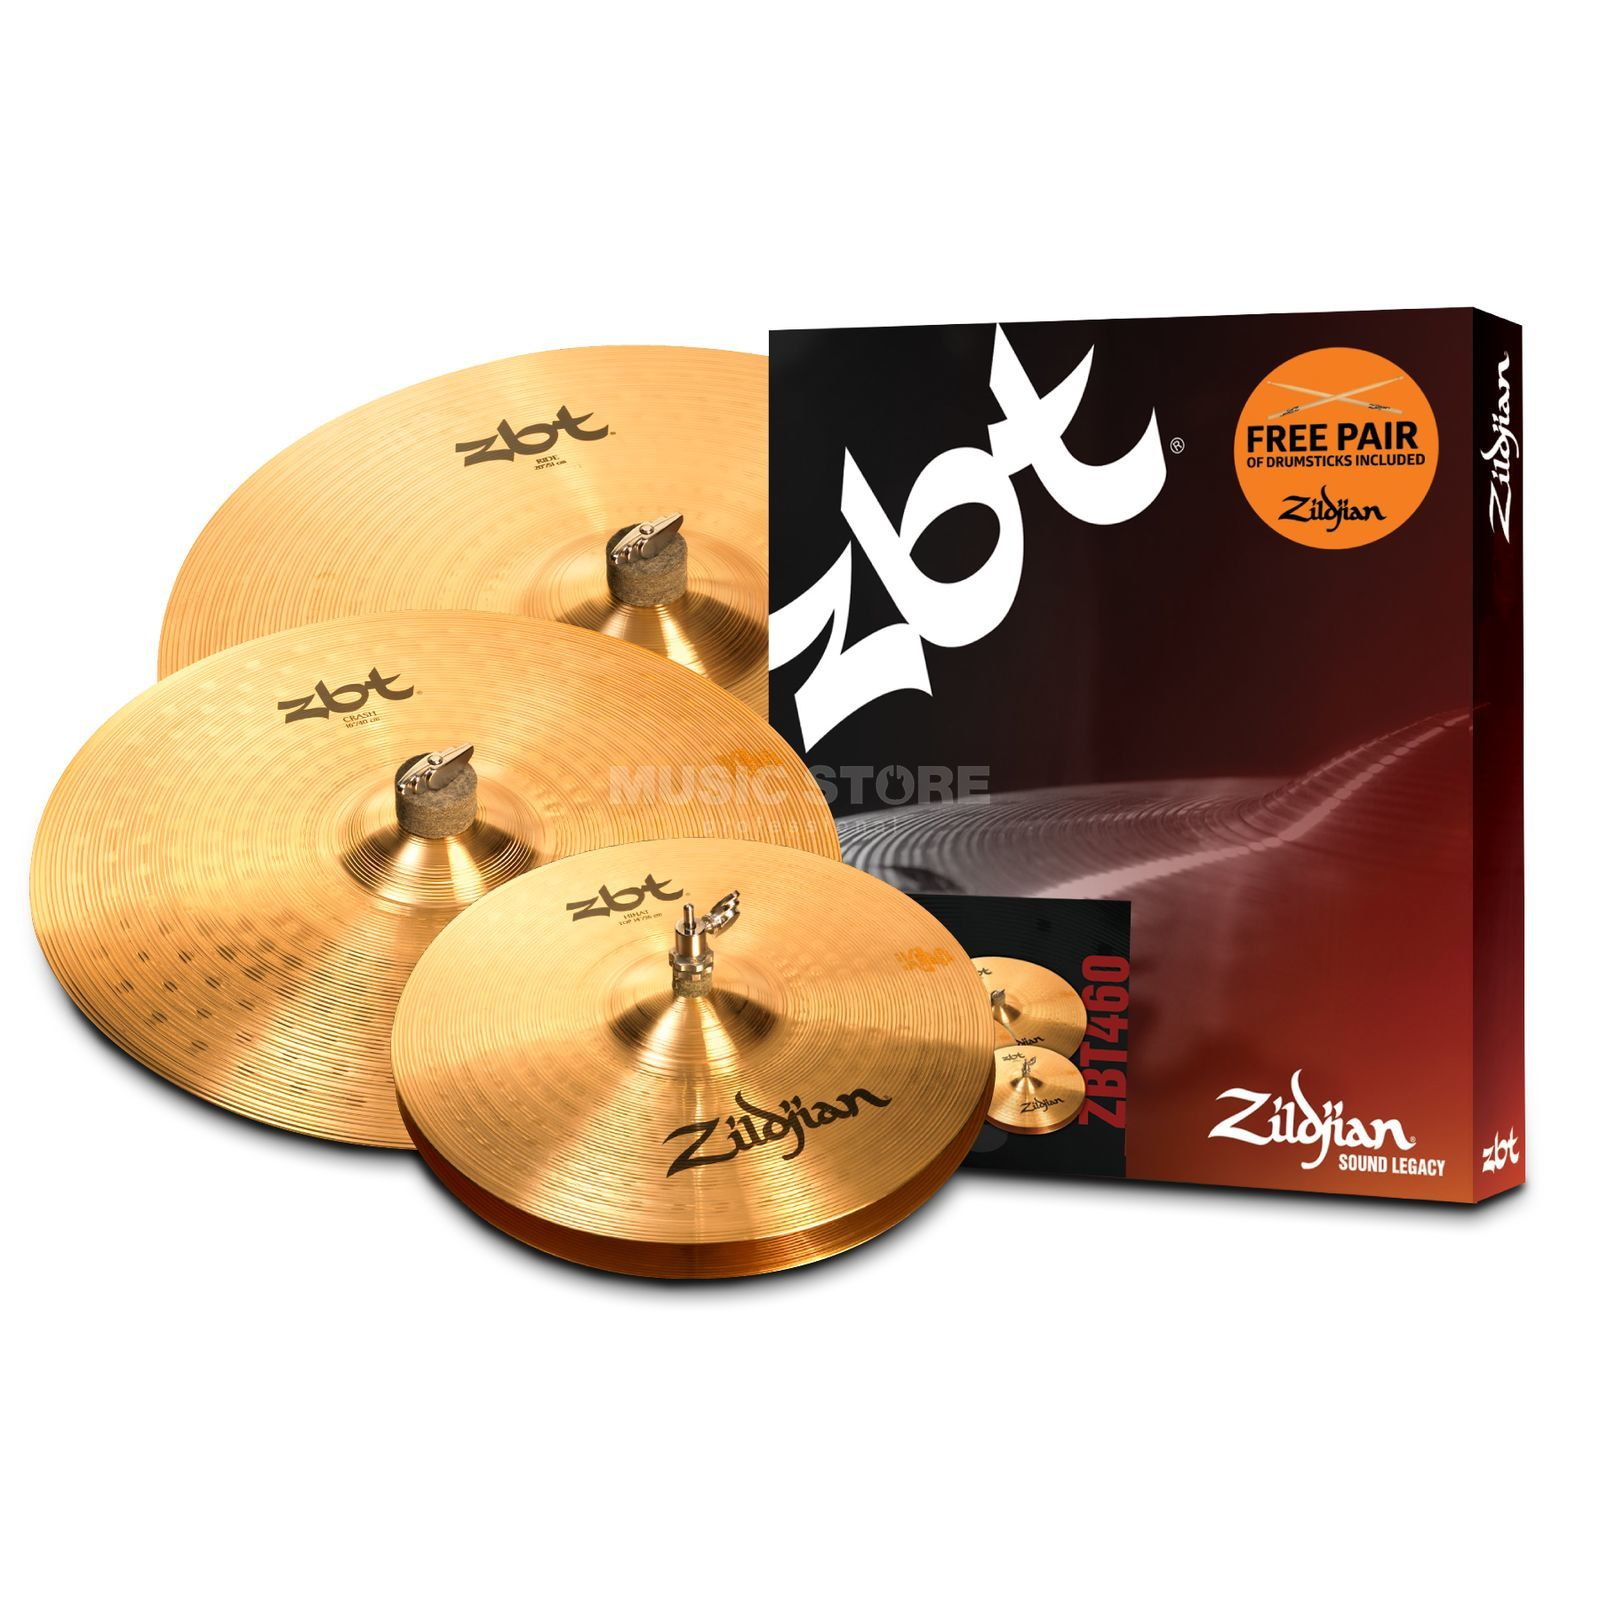 "Zildjian ZBT Box Set incl. Sticks, 14"" HH, 16"" CR, 20"" R Produktbild"